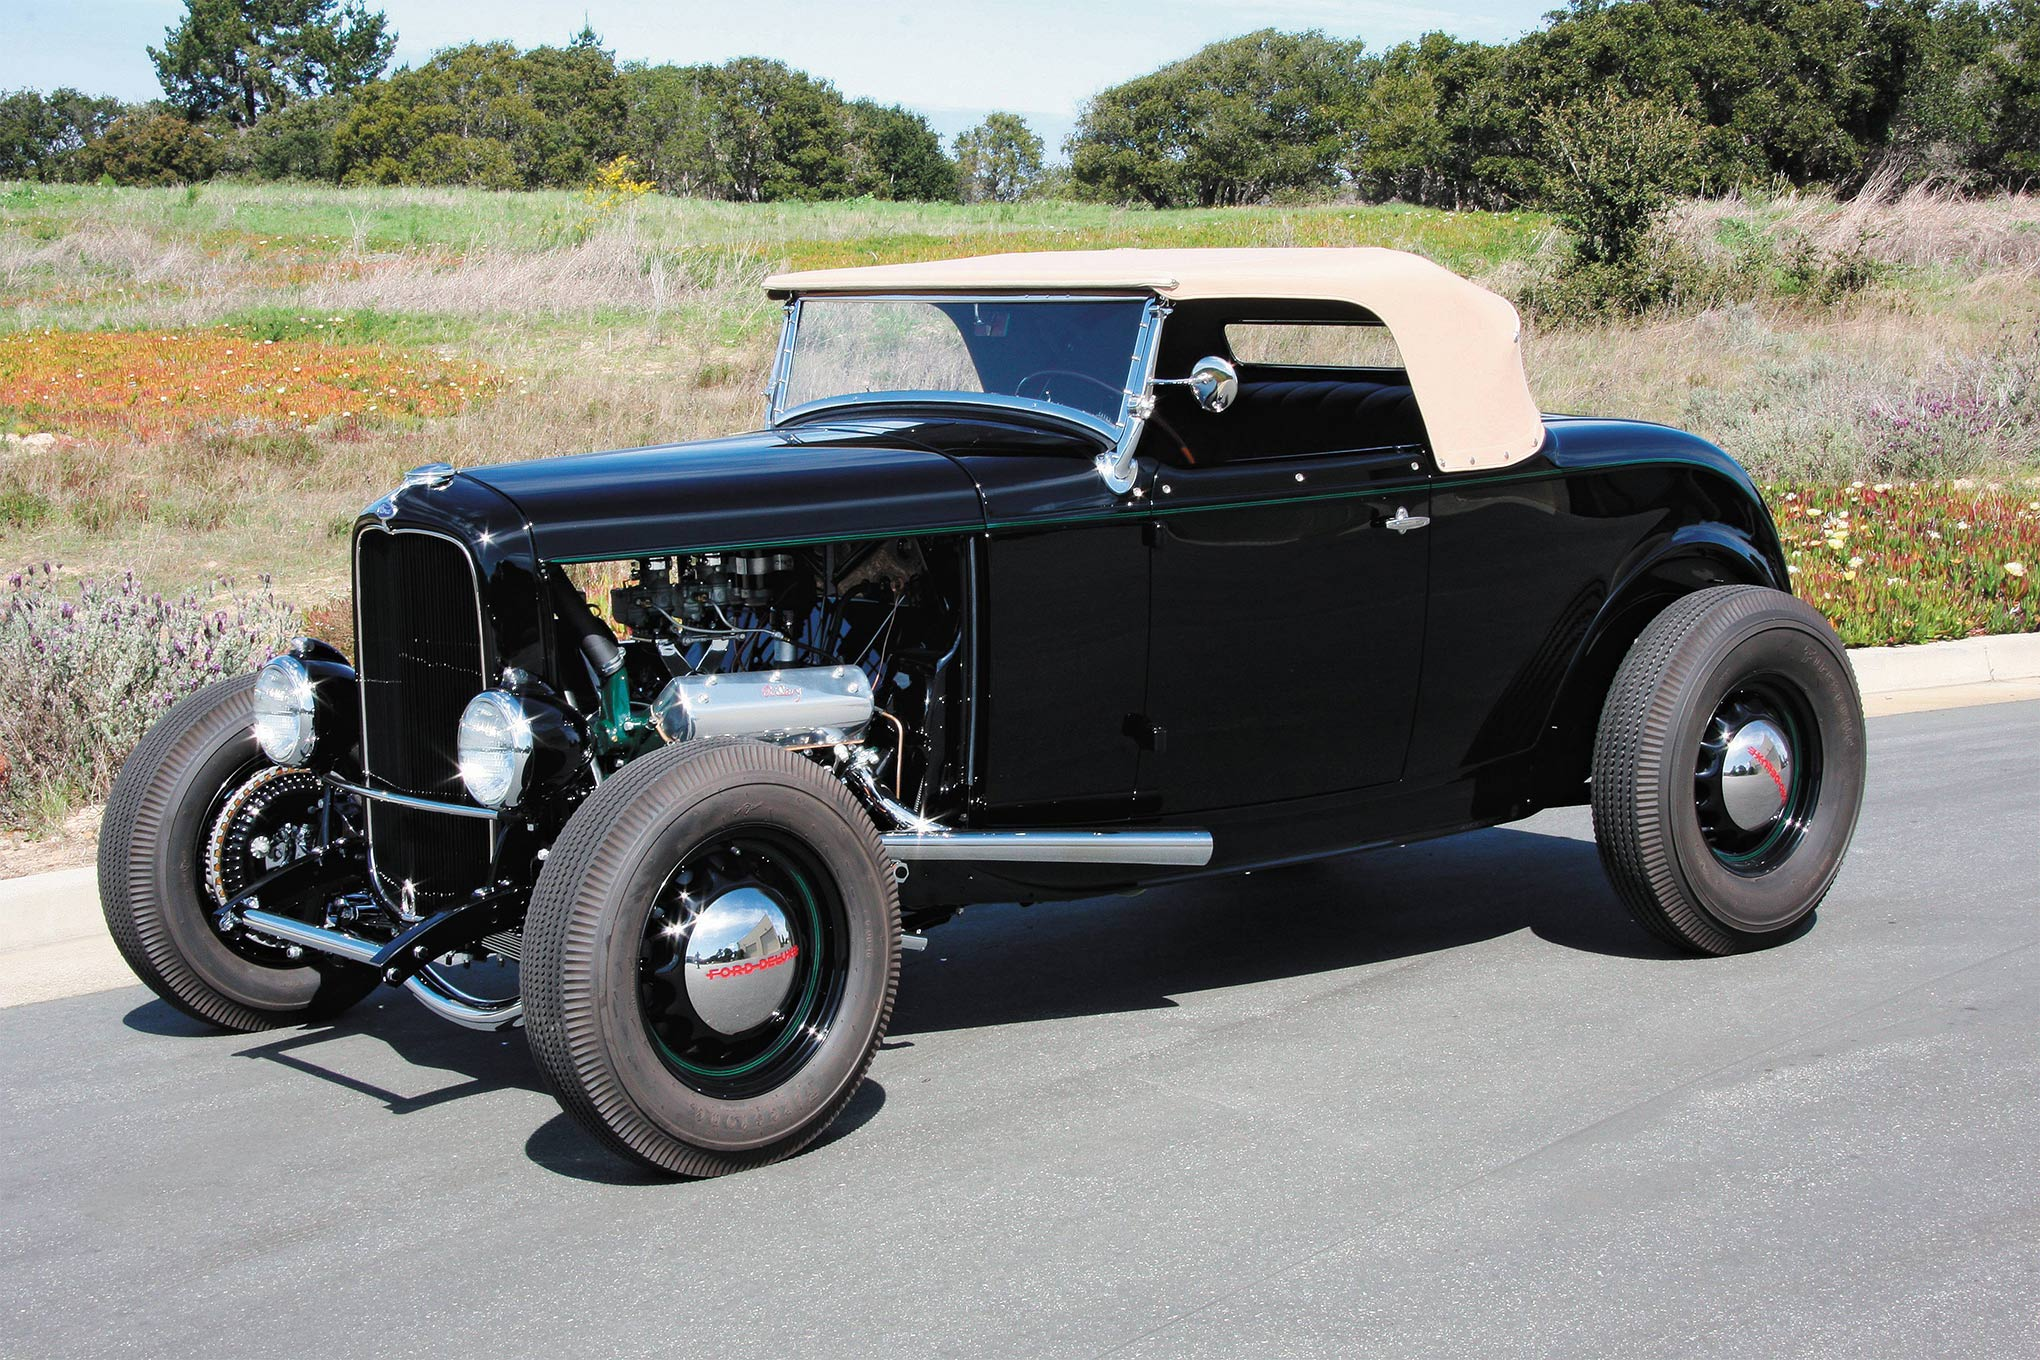 """Don Orosco's period-perfect Deuce roadster has Kinmont disc brakes in all four corners. That engine is a 21-stud Flathead V-8 with one of George Riley's OHV conversions. This Deuce would have been a """"bucks up"""" car back in the day."""